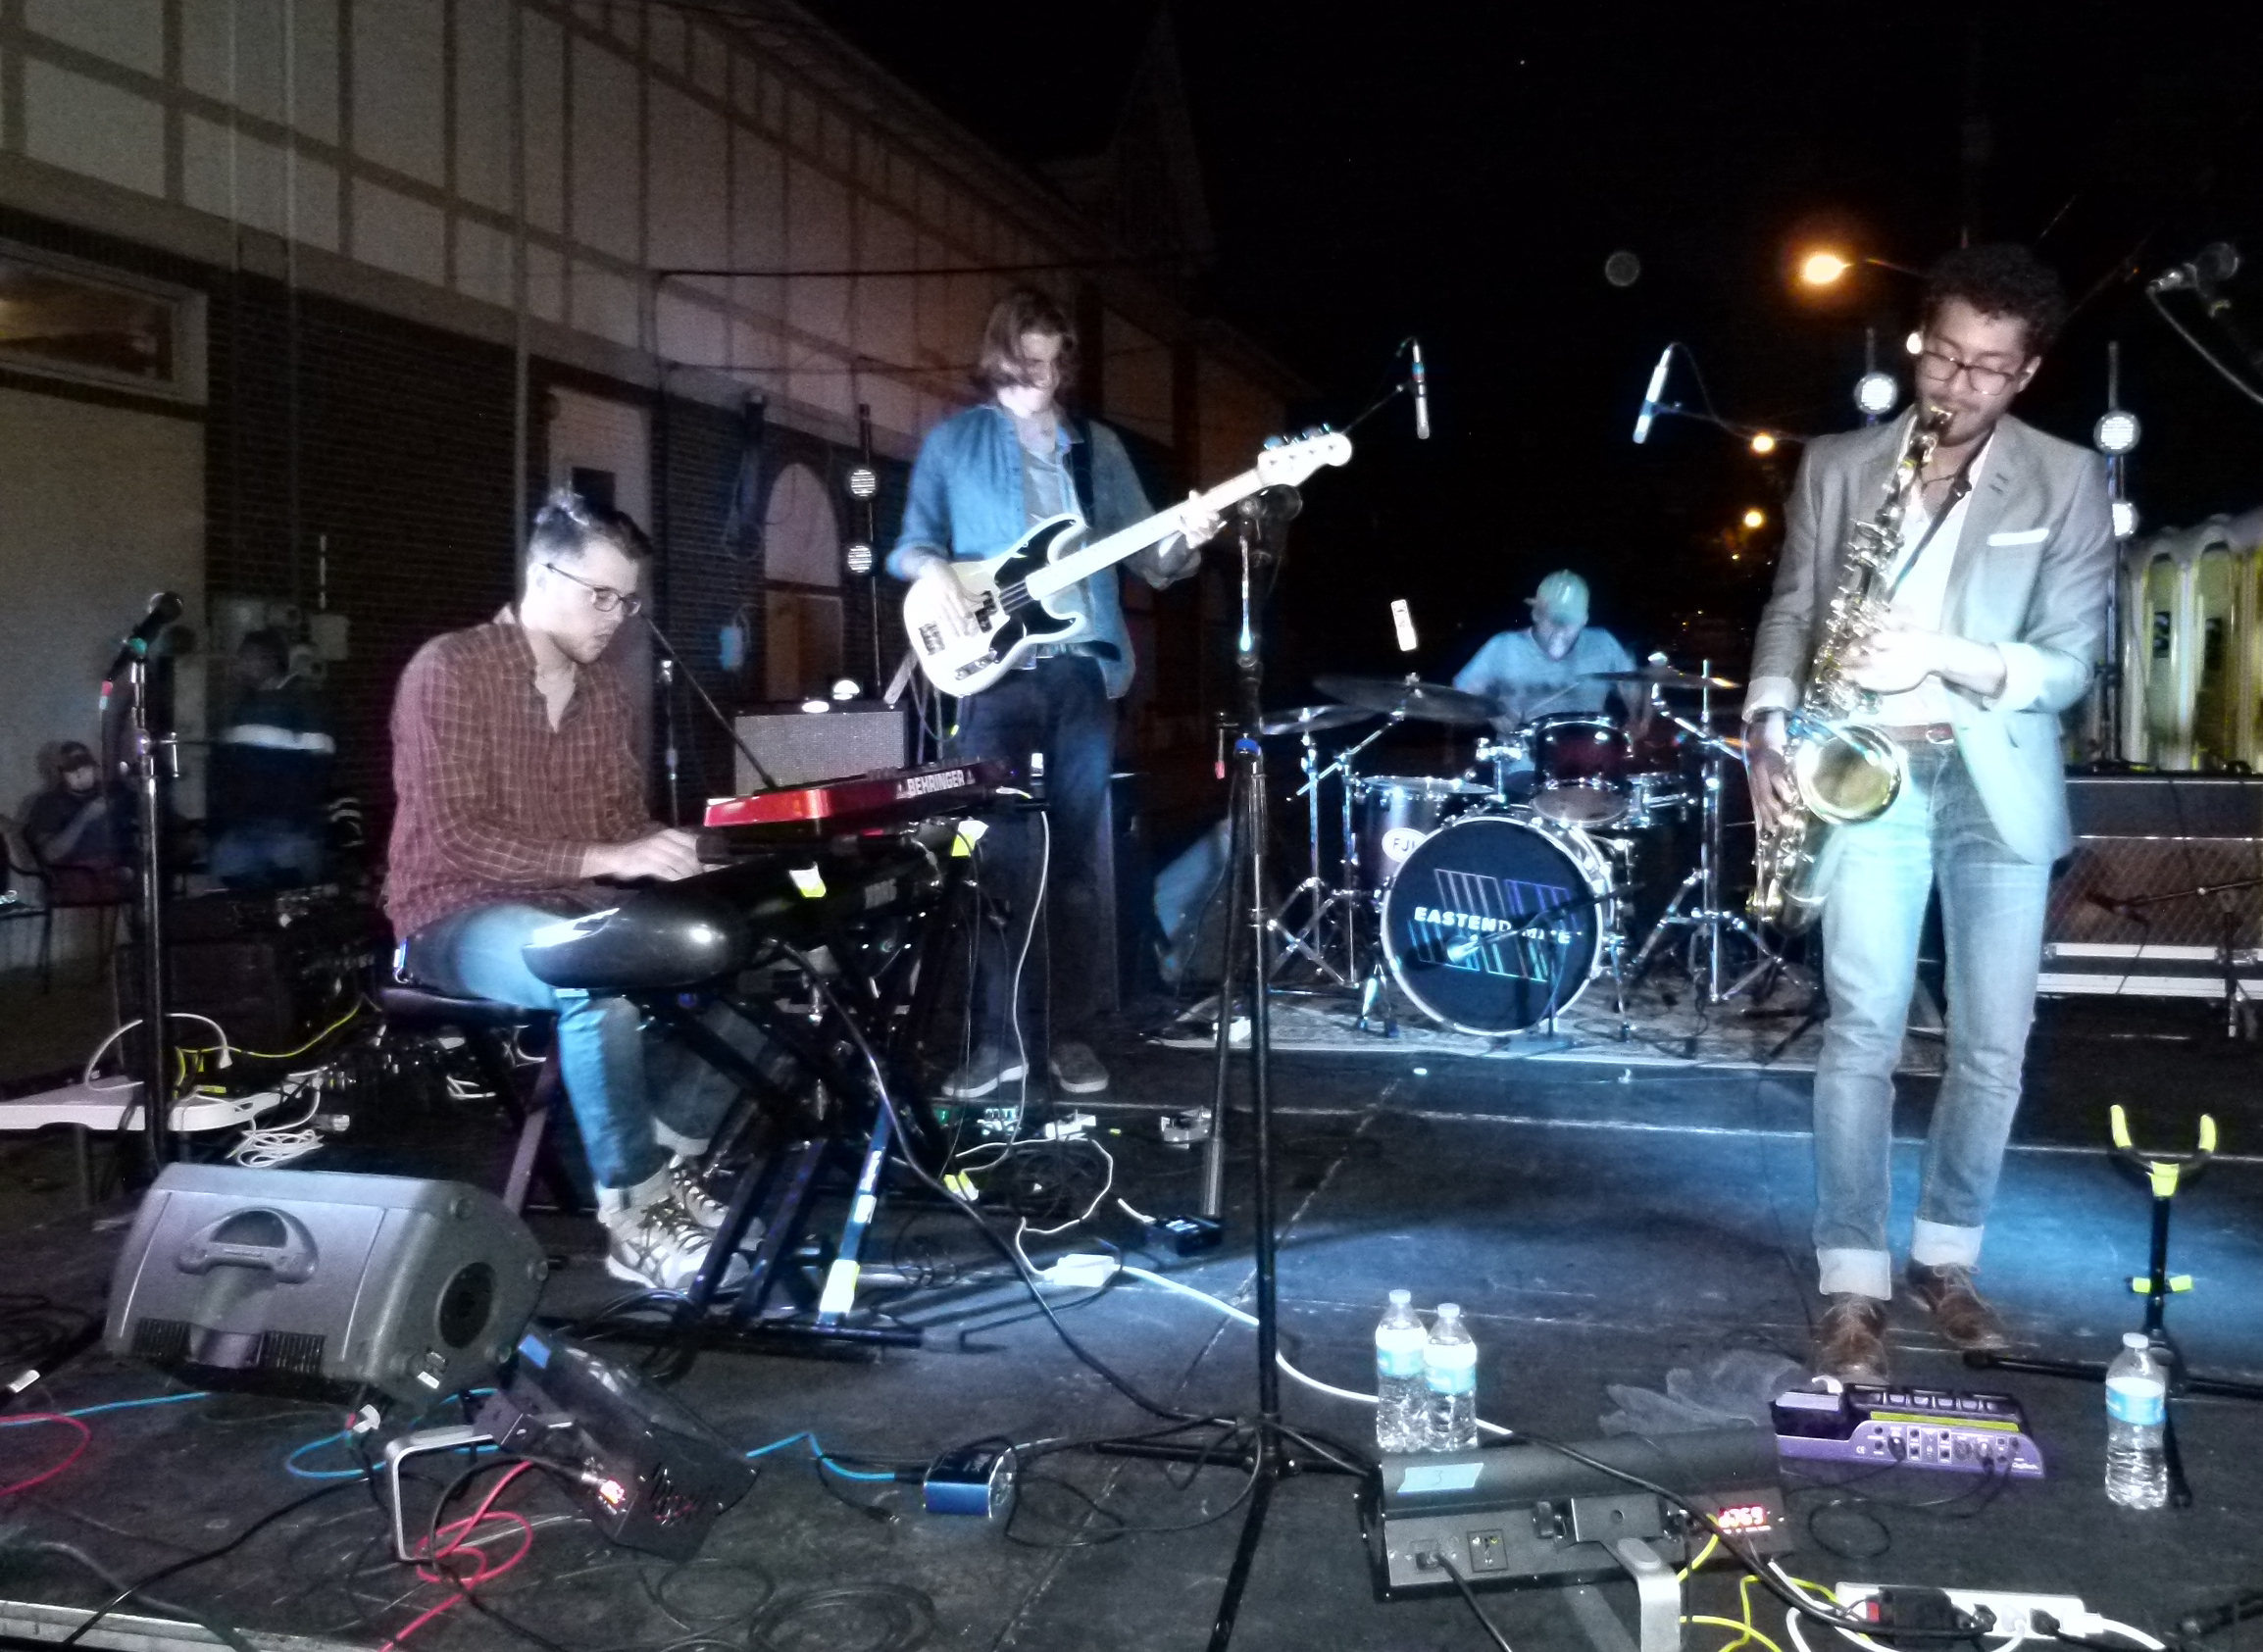 East End Mile jamming. Emerson Jay and Nevada Color were also on the night's bill.